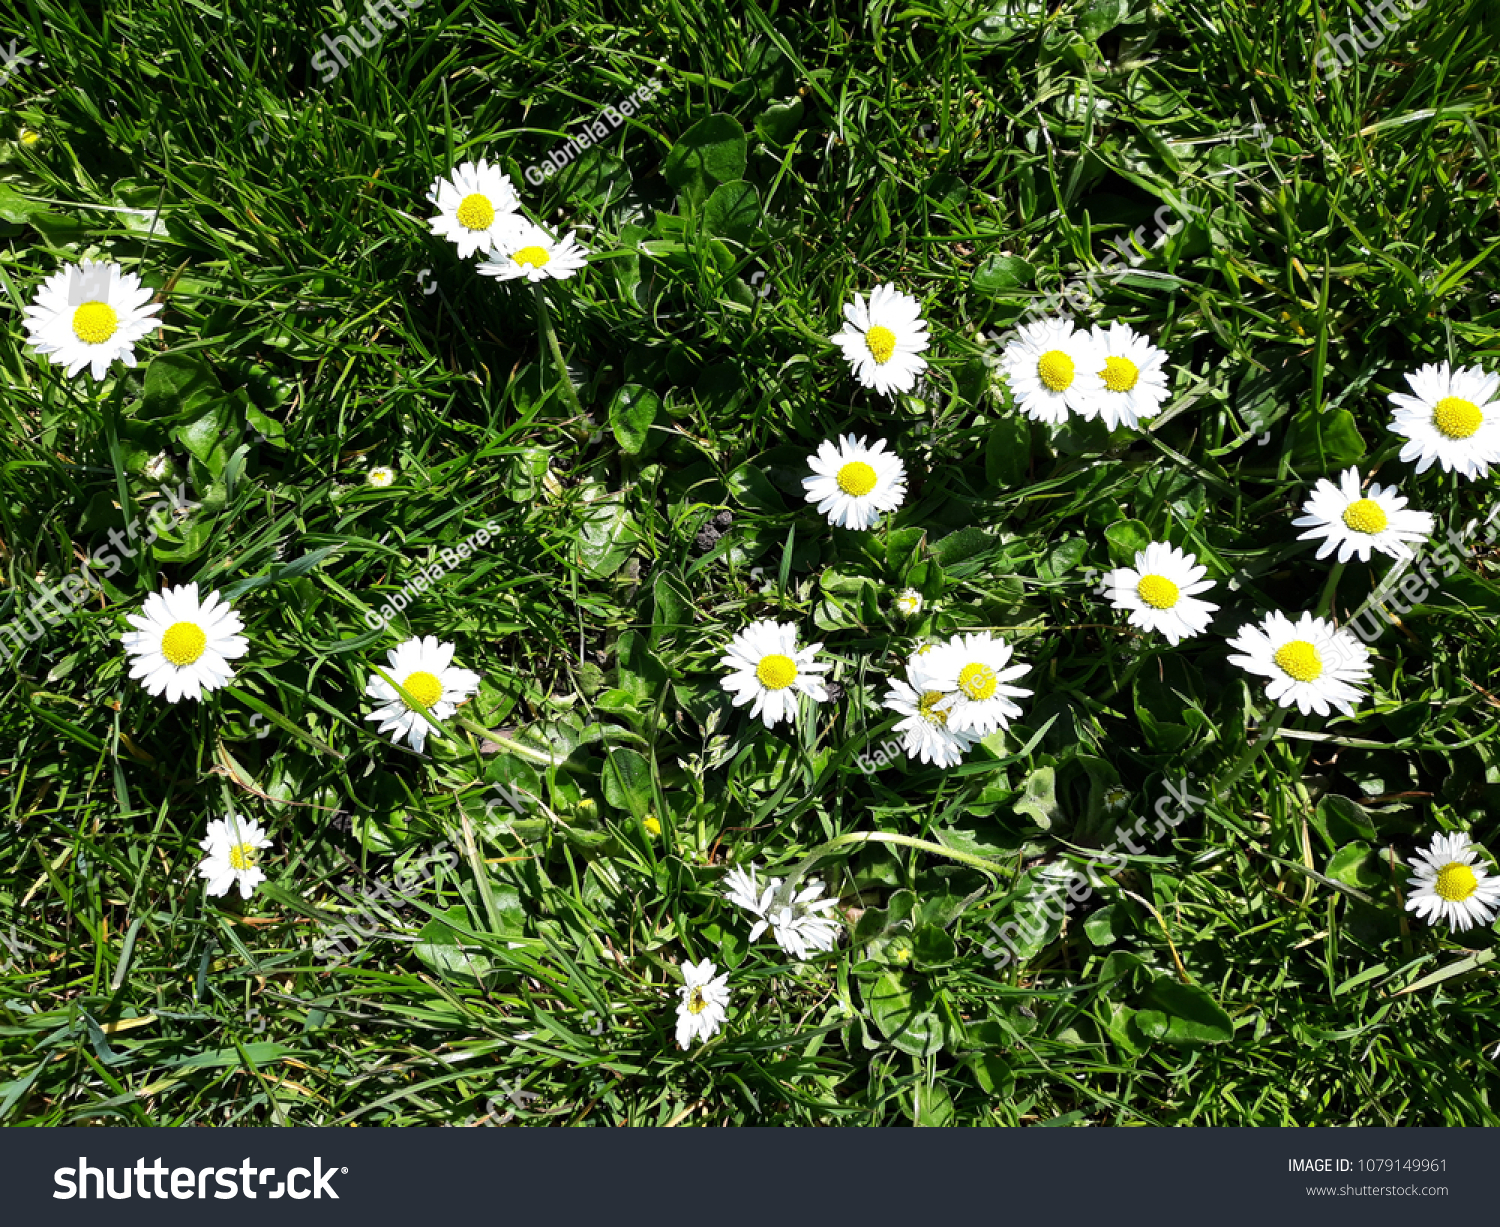 Beautiful white daisies flowers daisy flower stock photo edit now beautiful white daisies flowers daisy is a flower of asteraceae family izmirmasajfo